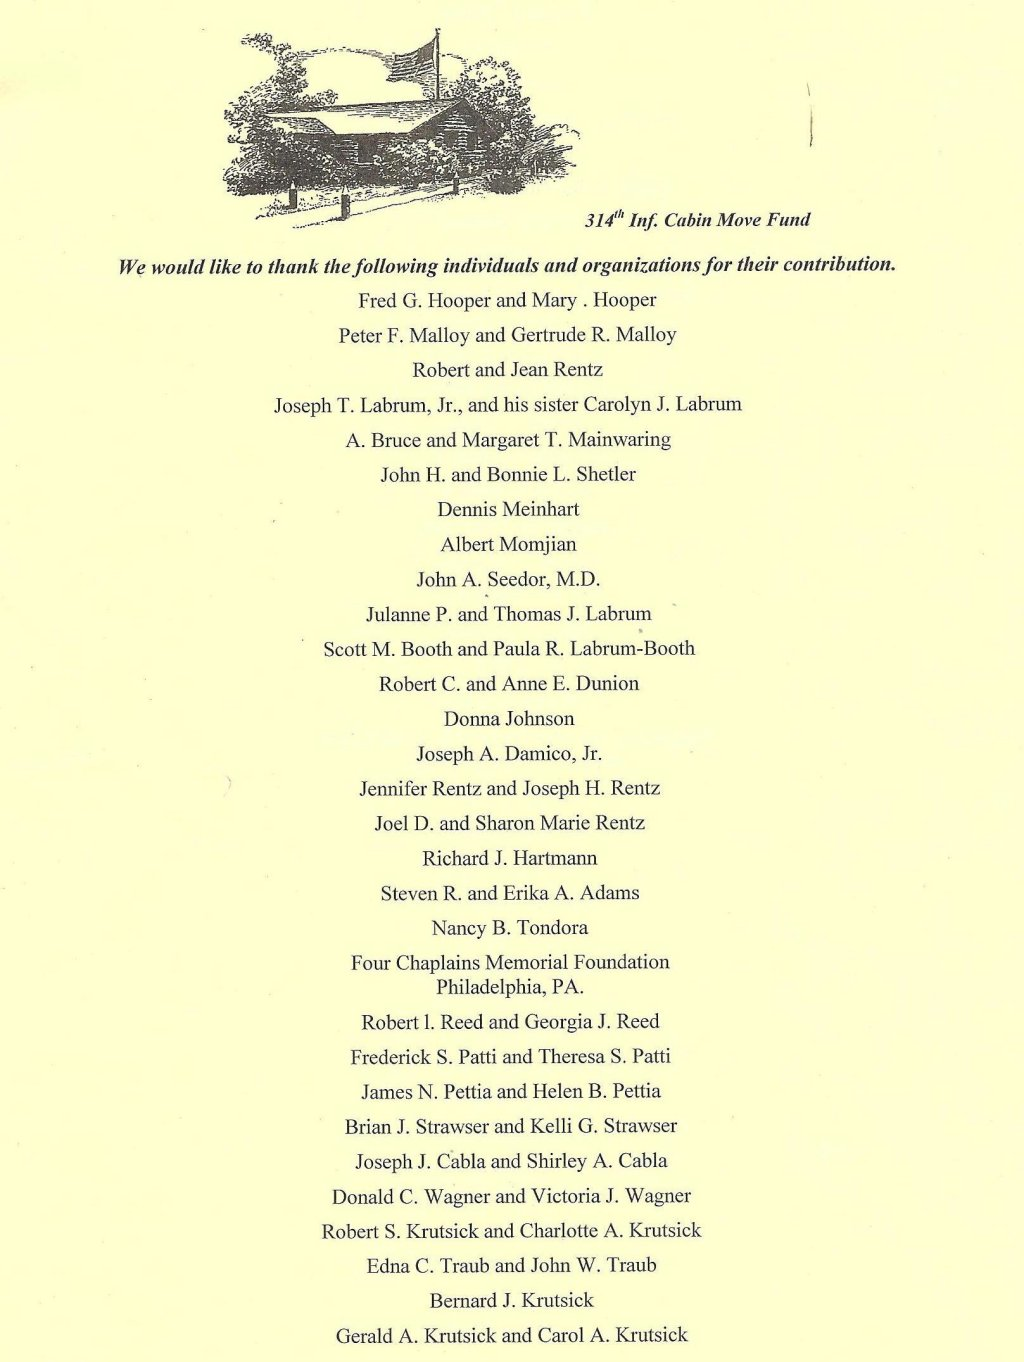 314th Infantry - 2013 Memorial Day Program - Insert Page 1